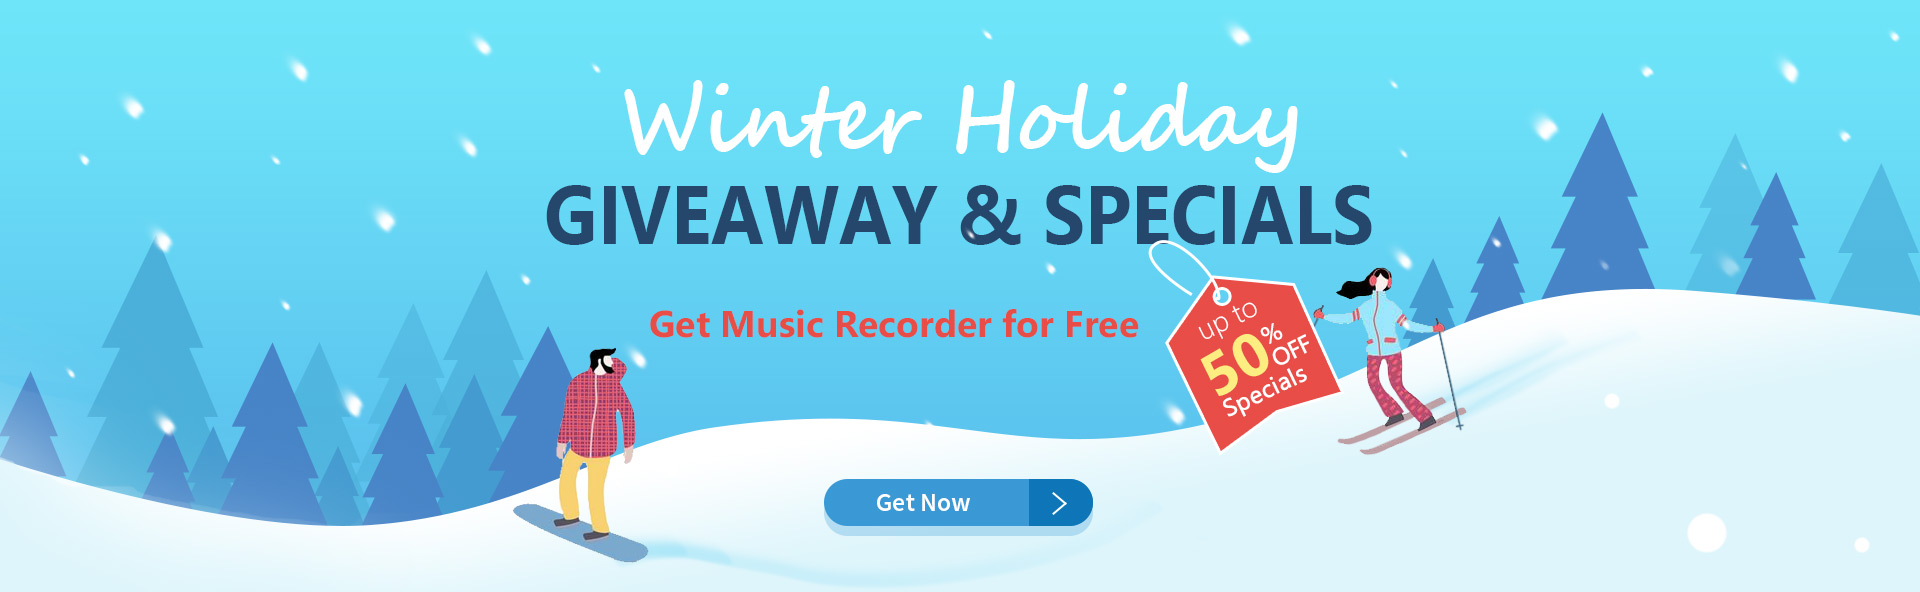 banner winter holiday